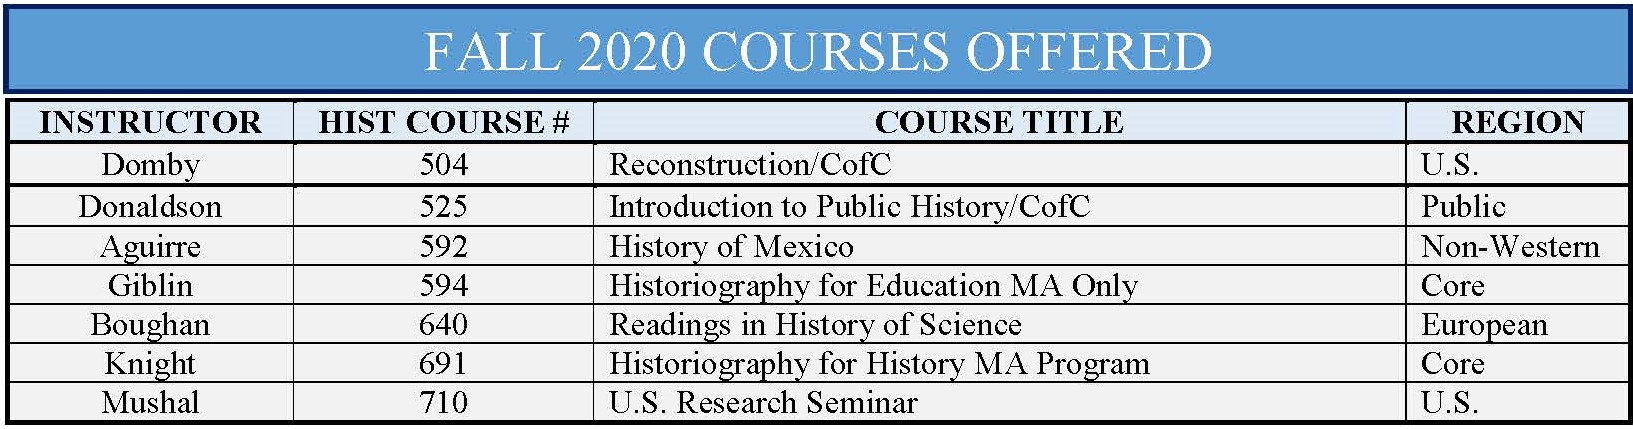 master courses offered fall 2020